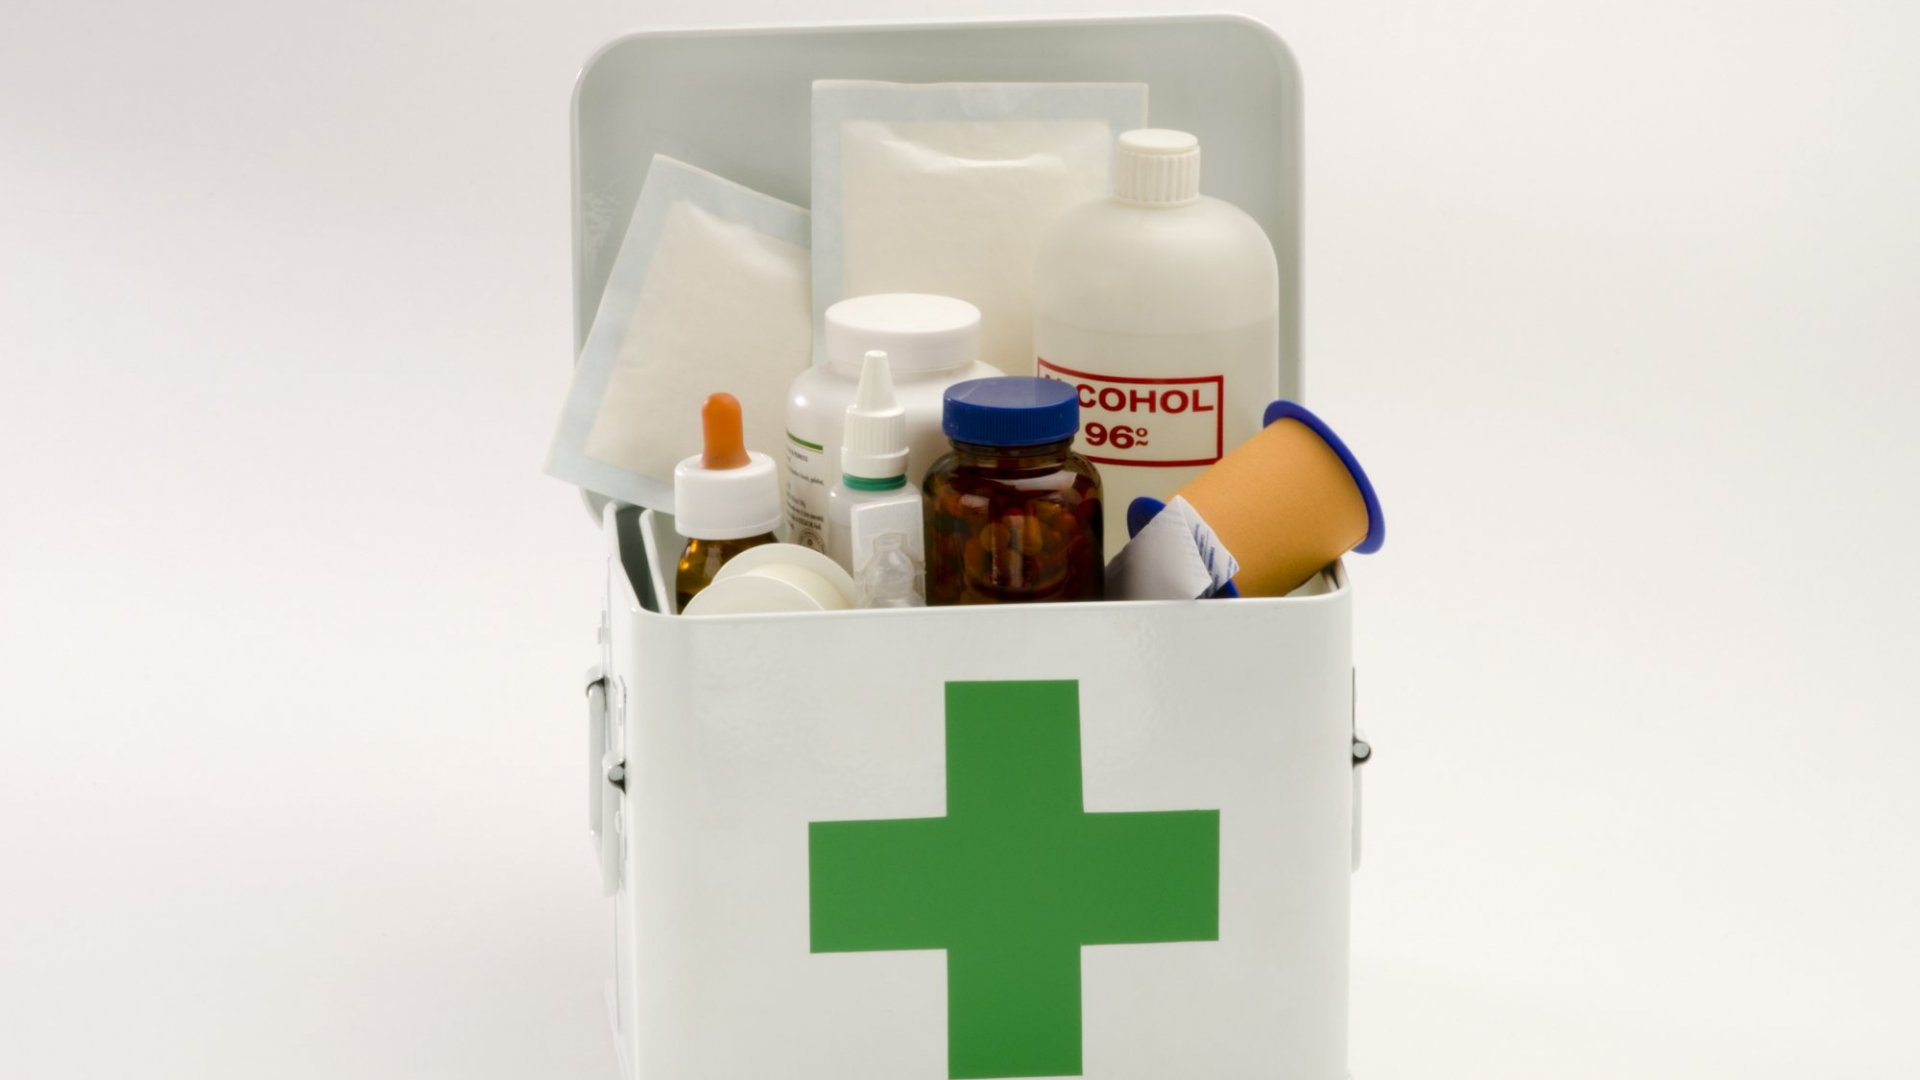 workplace accidents 1st aid kits